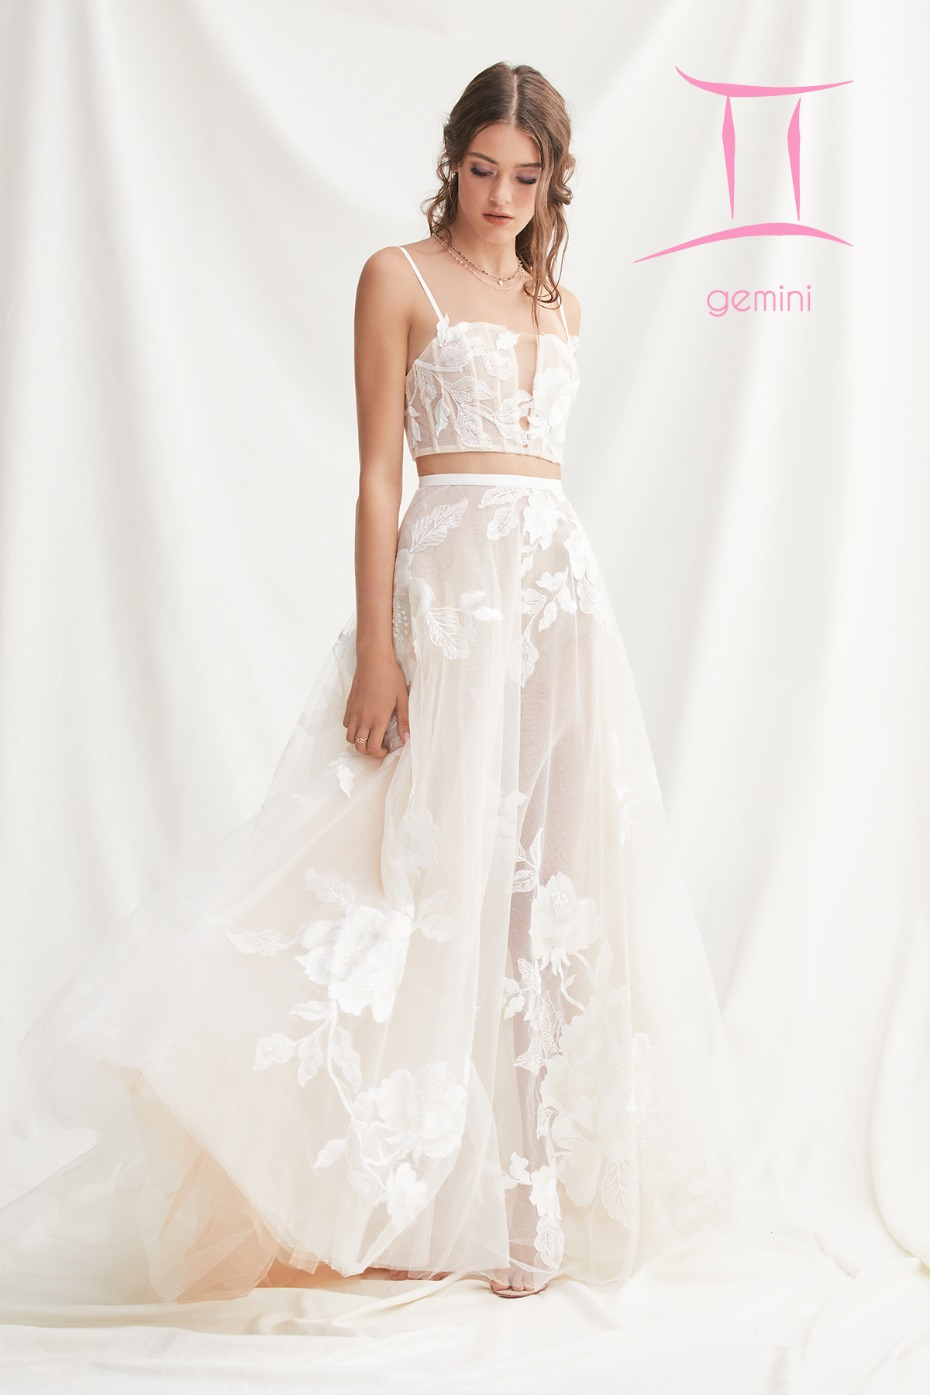 crop top wedding dress for the Gemini Zodiac